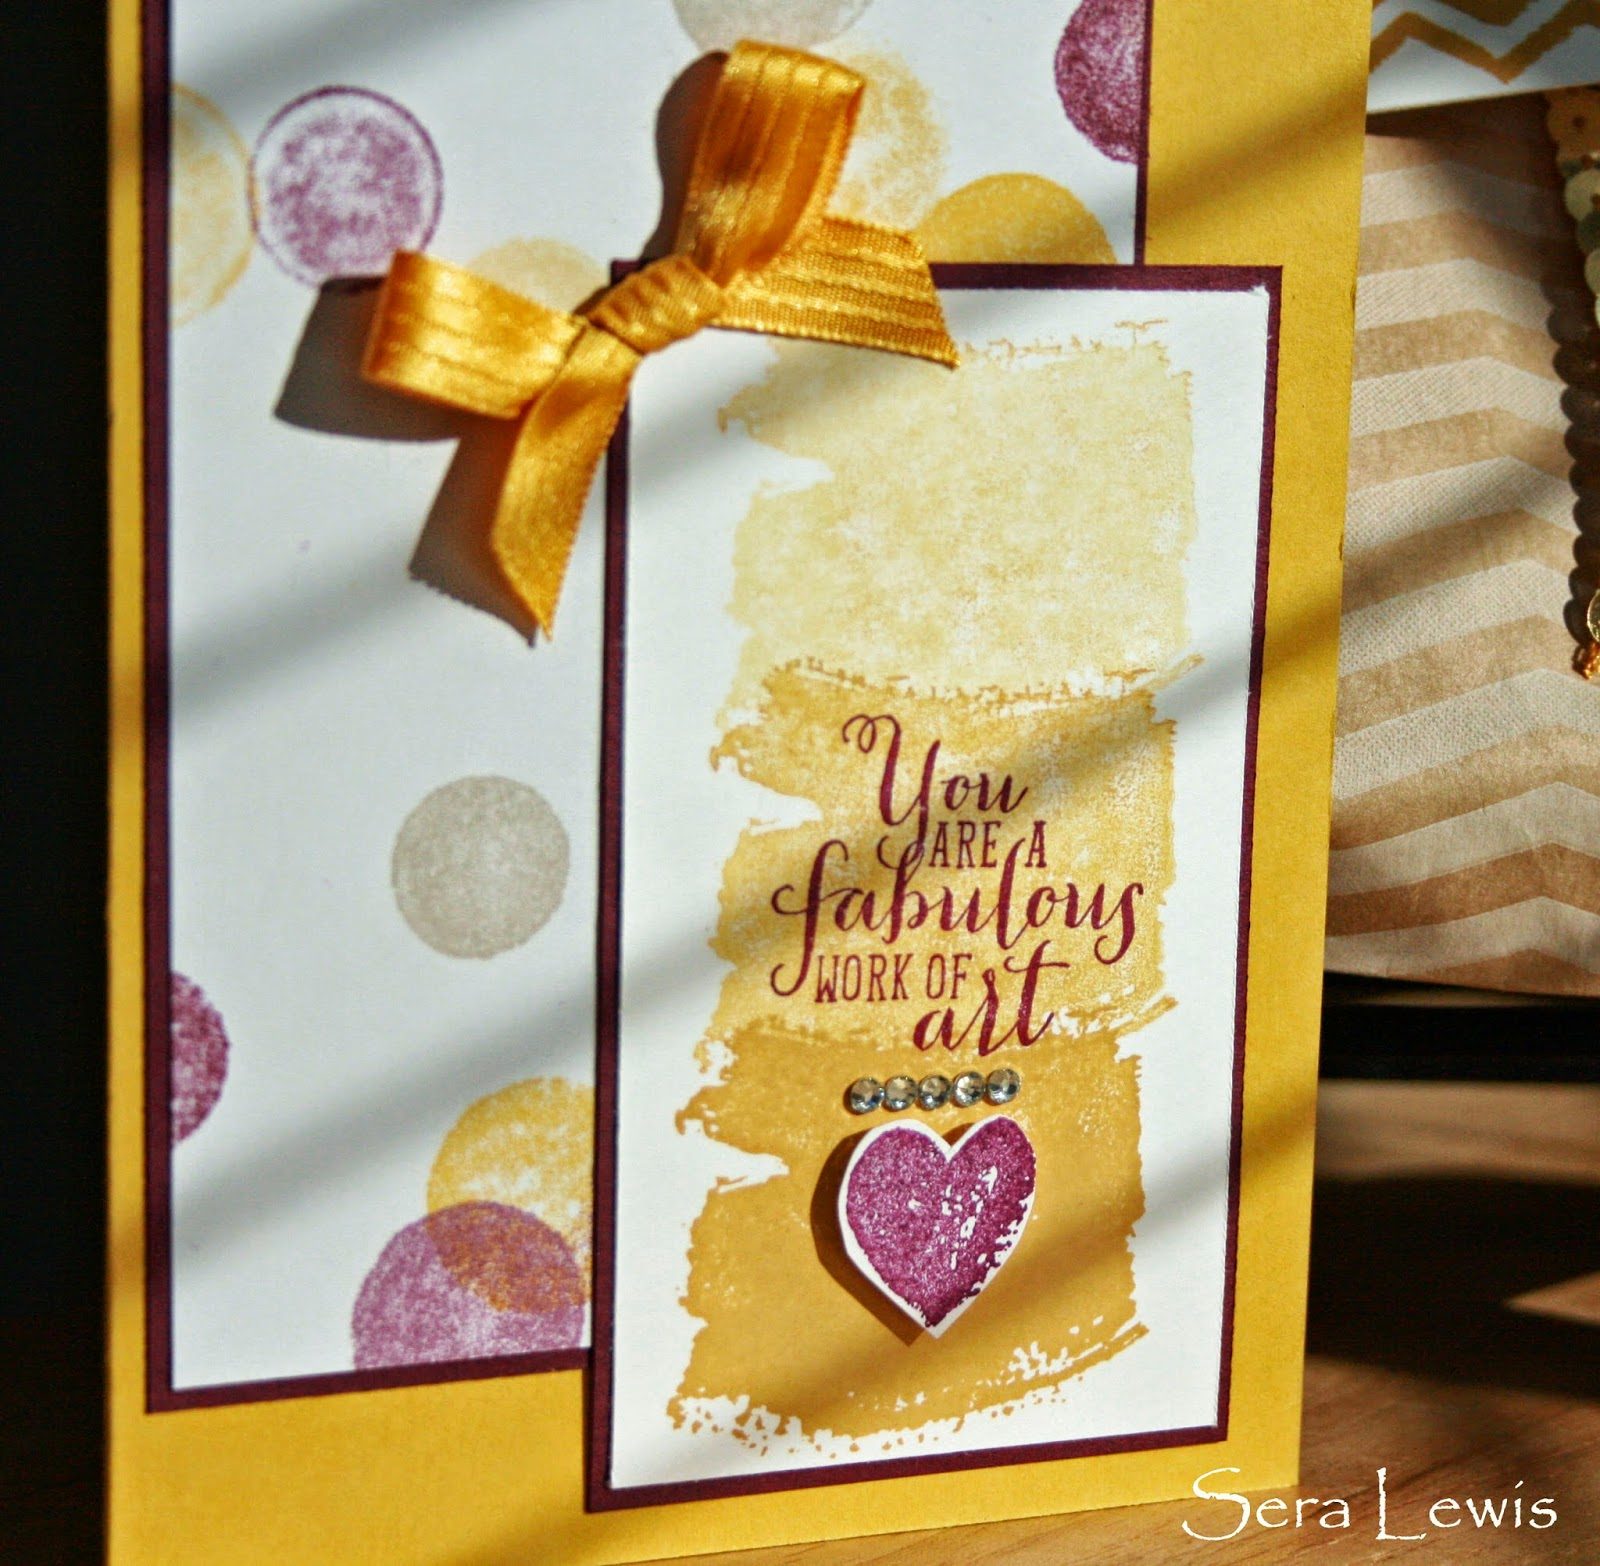 Stampin' Up Work of Art card